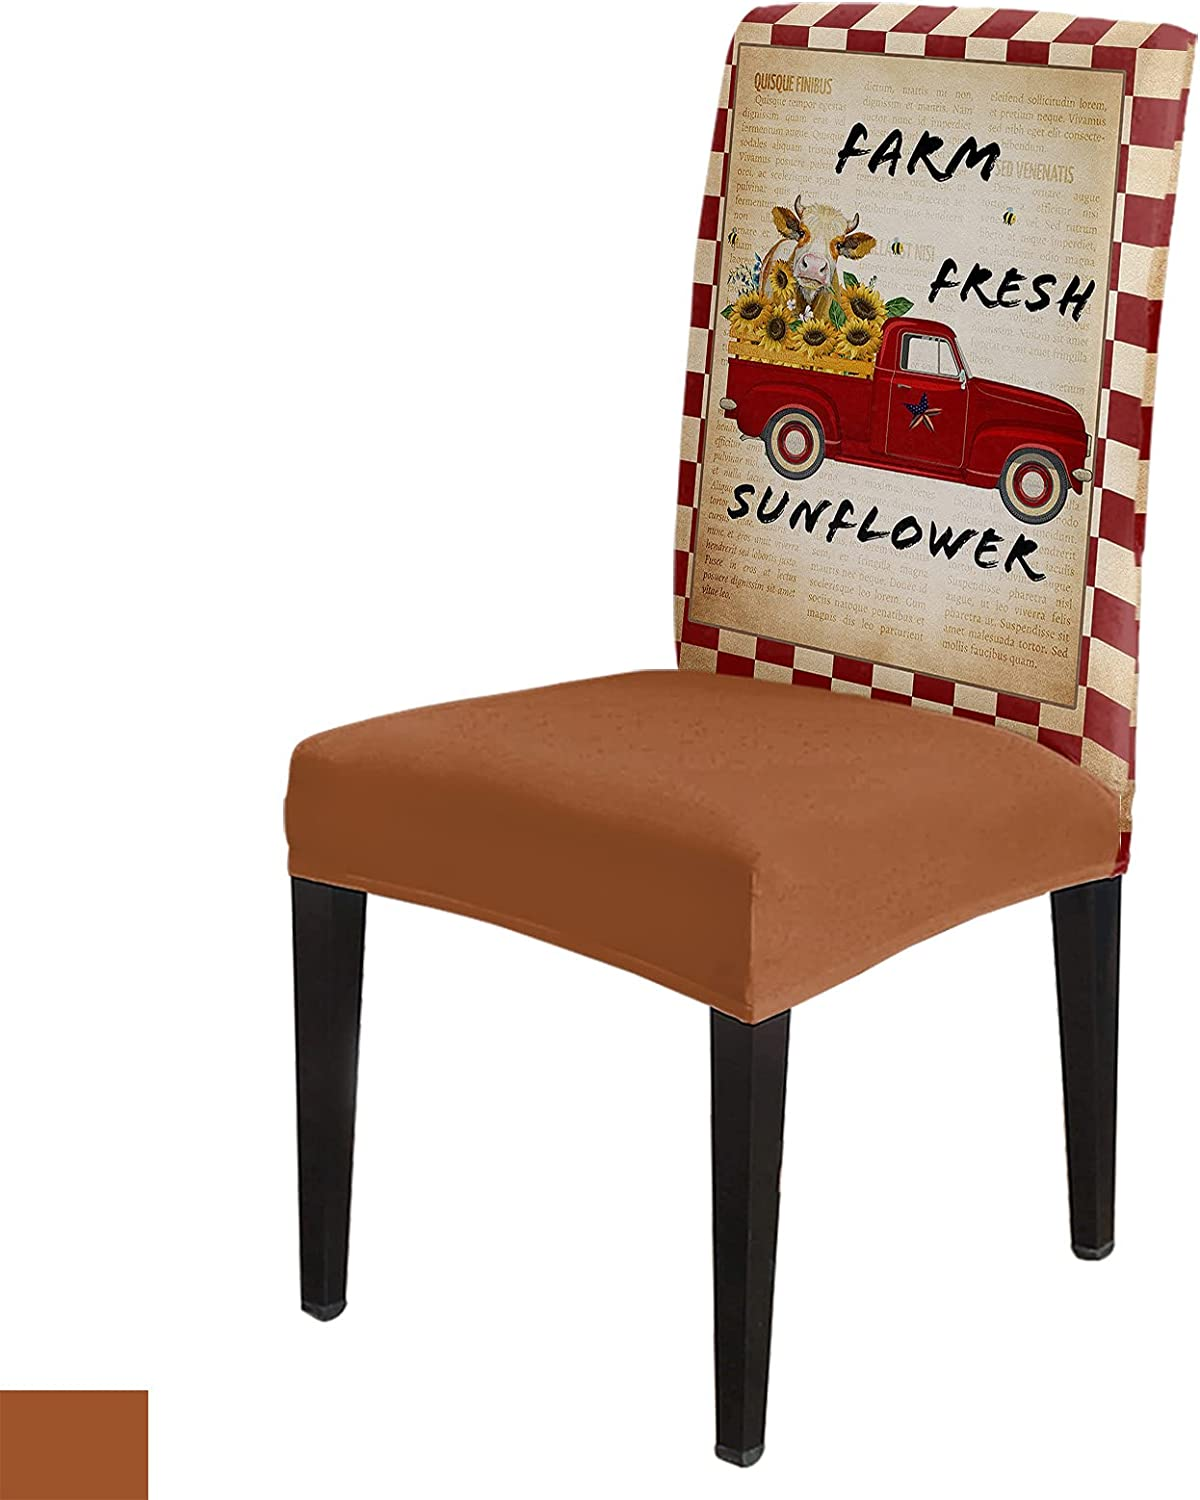 Farm Style Chair Slip Cover Set of with Dining Seat Philadelphia Mall 8 Covers El Max 89% OFF